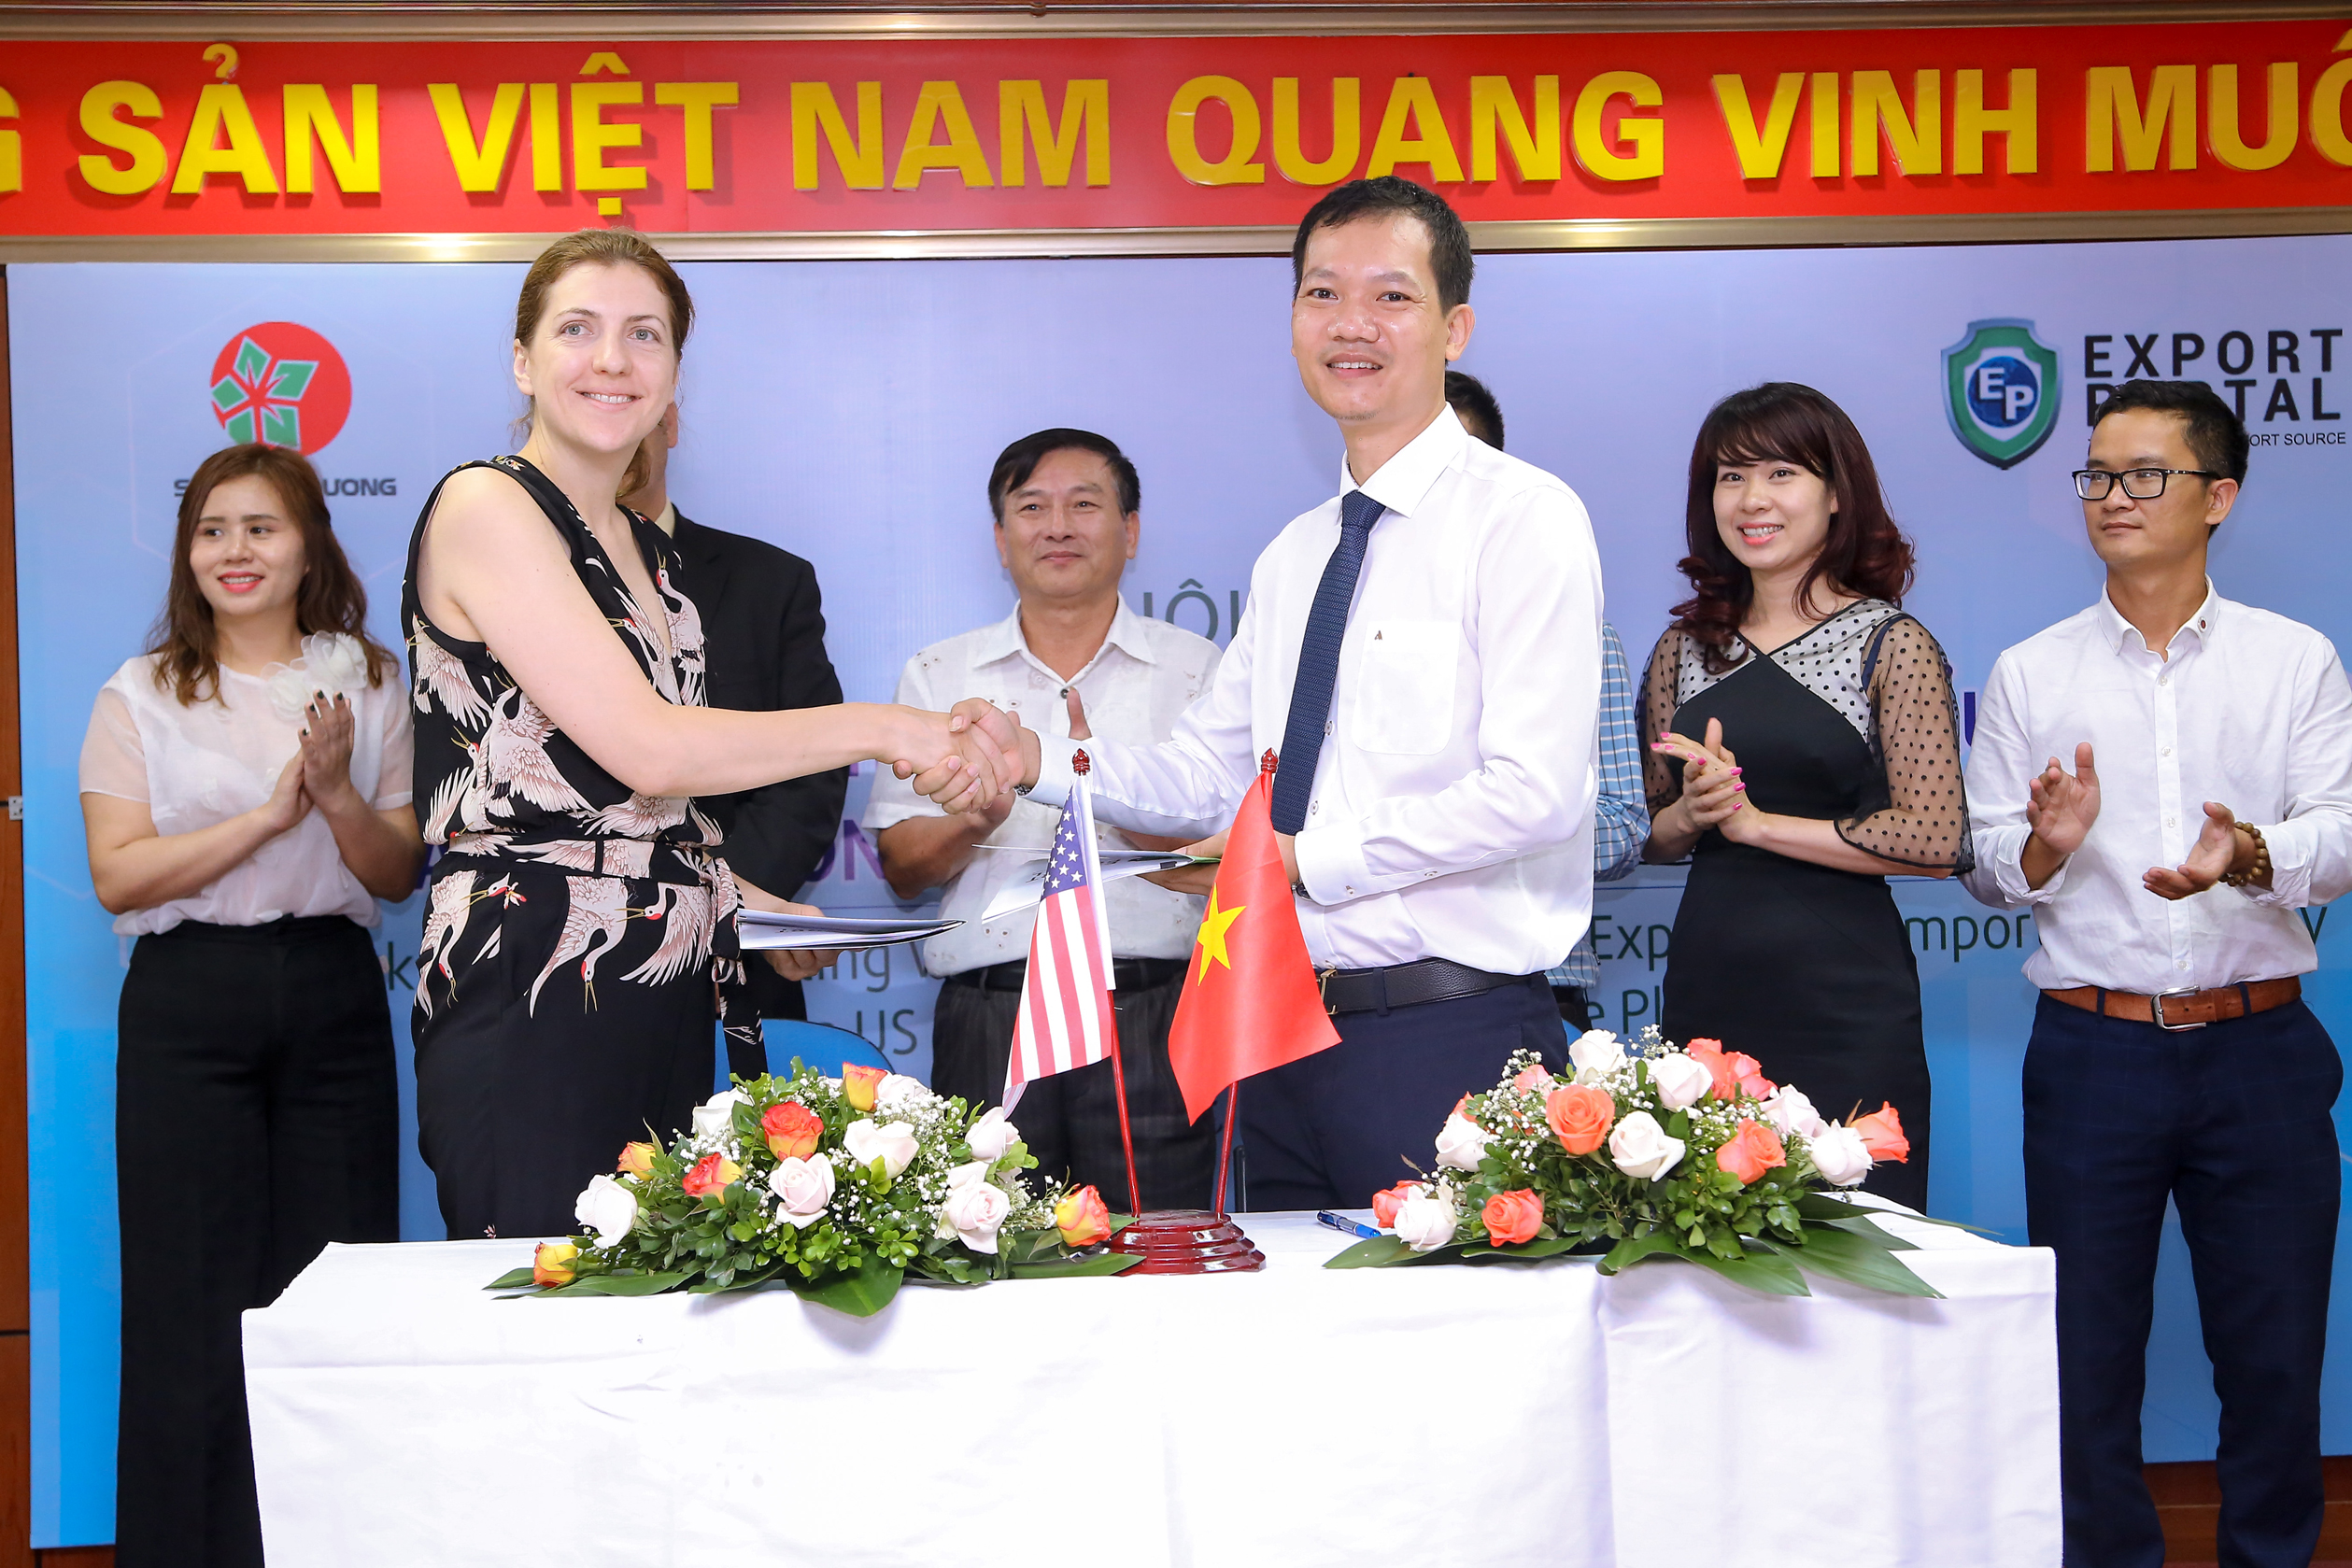 Sunstar Investment – The Official Brand Ambassador of ExportPortal.com in Vietnam